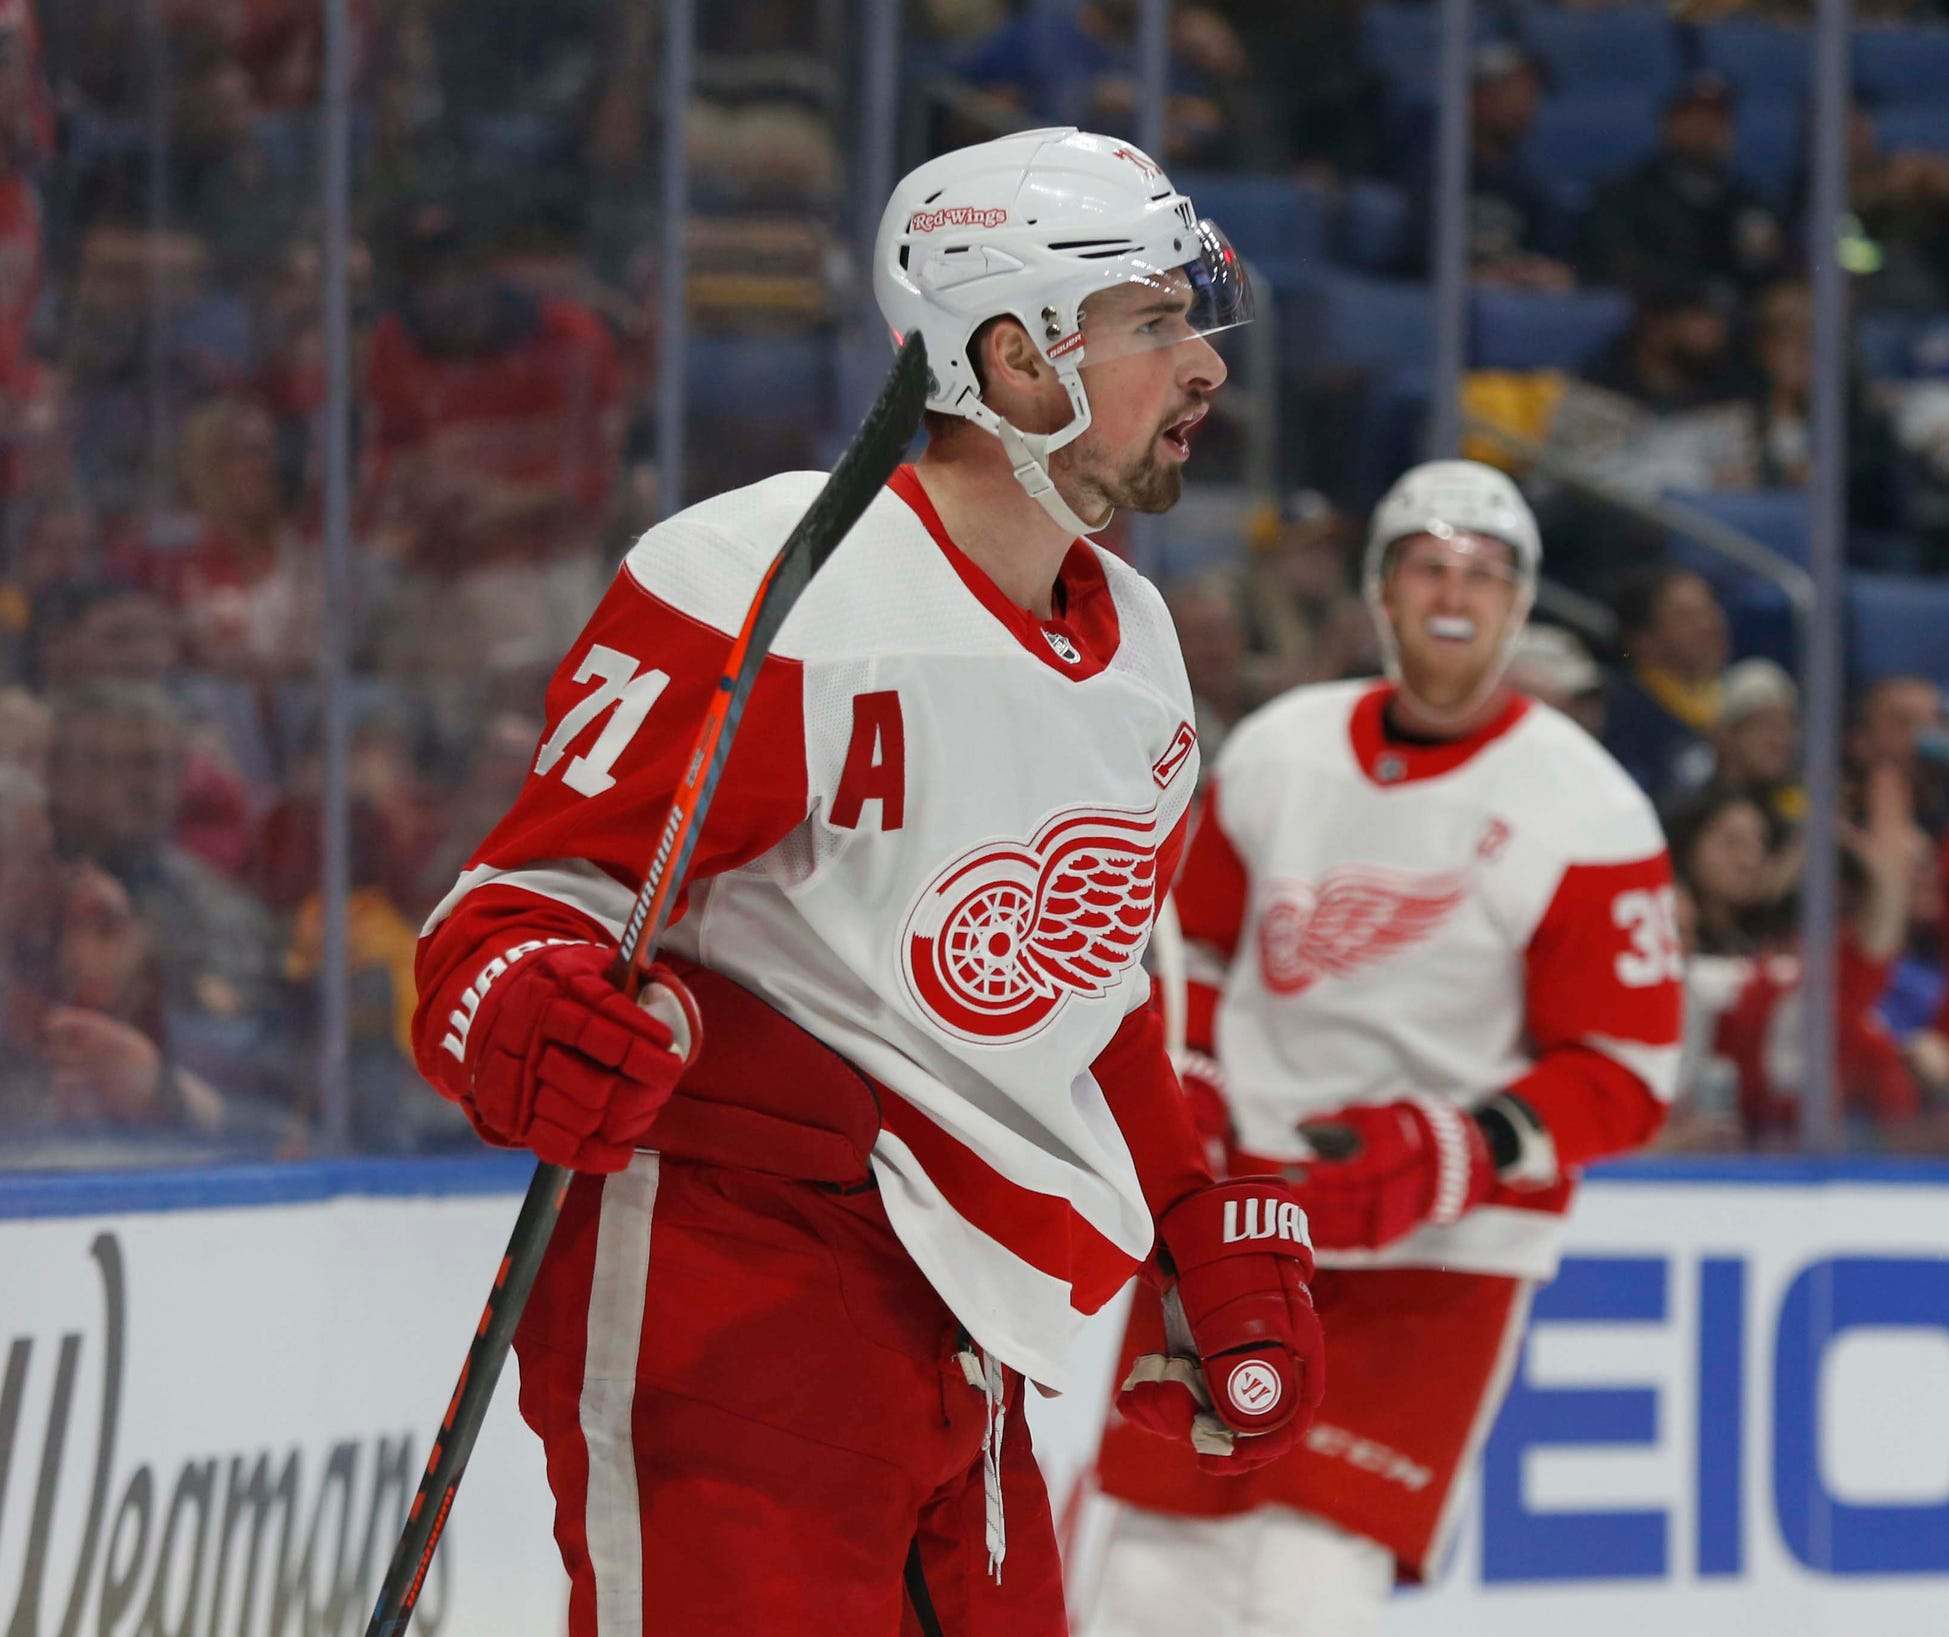 Red Wings center Dylan Larkin celebrates his goal during the third period of the Wings' 5-4 win on Thursday, March 28, 2019, in Buffalo, N.Y.